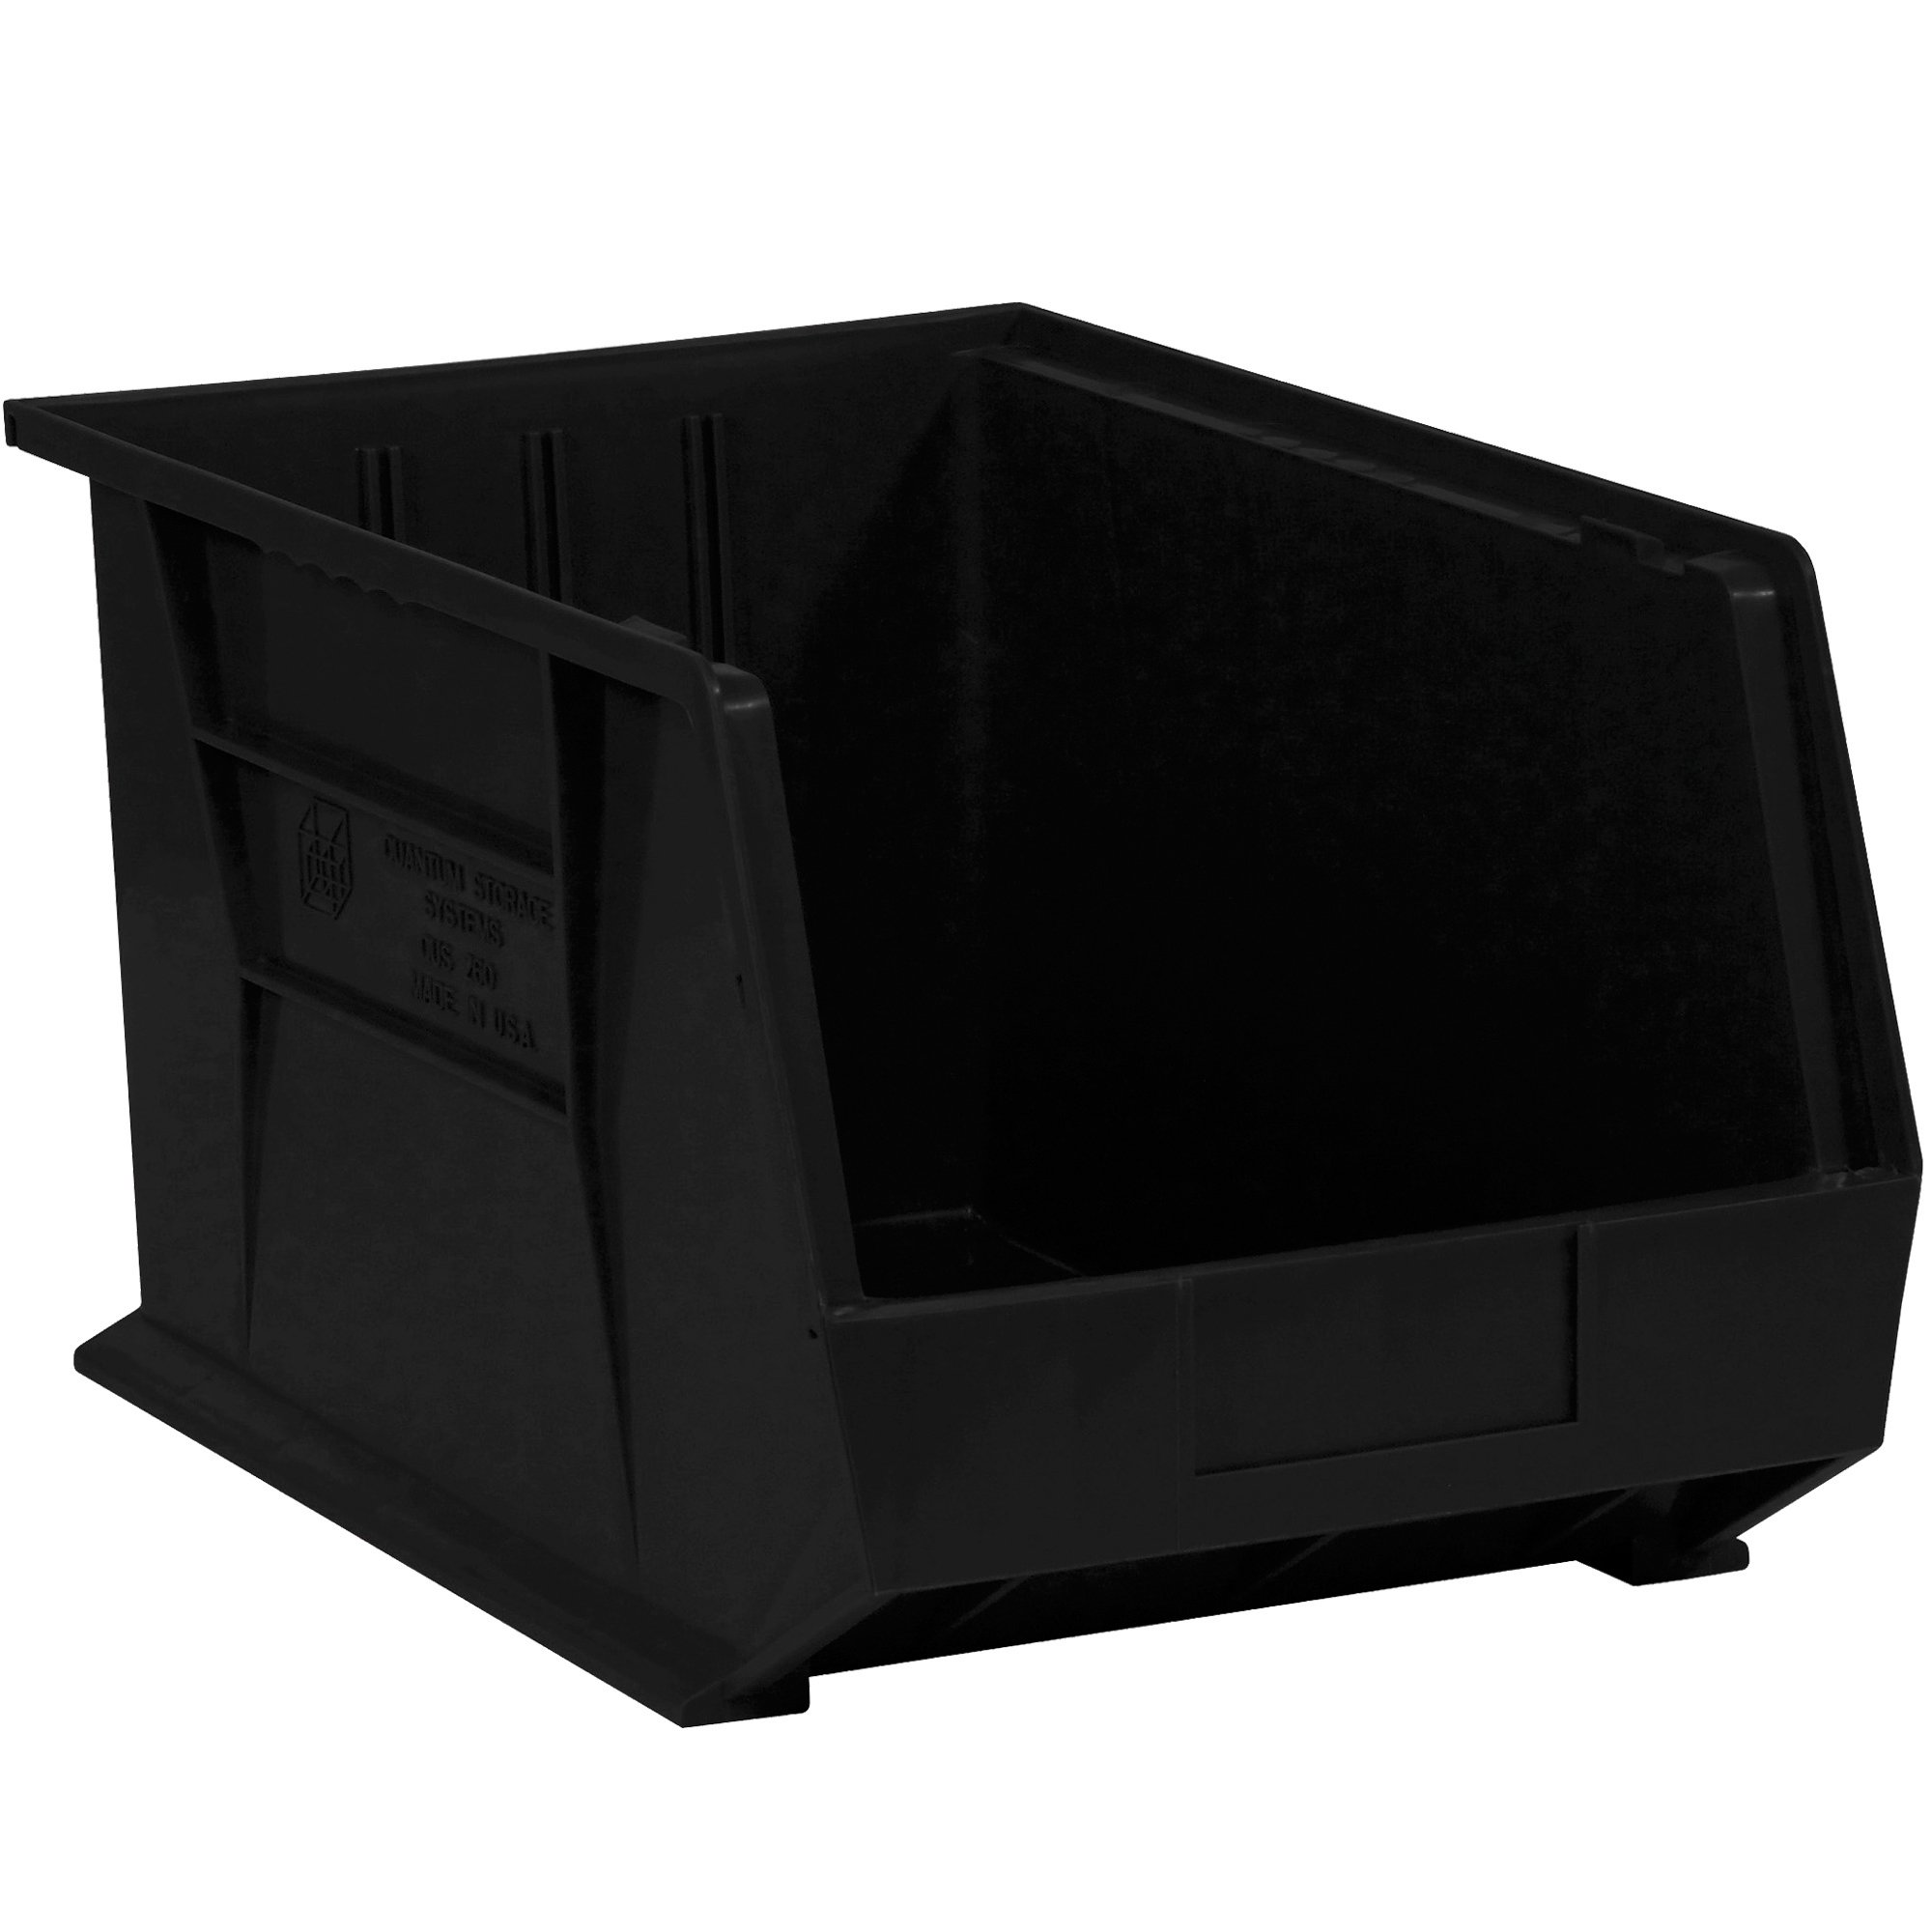 "Aviditi BINP1087K Plastic Stack and Hang Bin Boxes, 10 3/4"" x 8 1/4"" x 7"", Black (Pack of 6)"